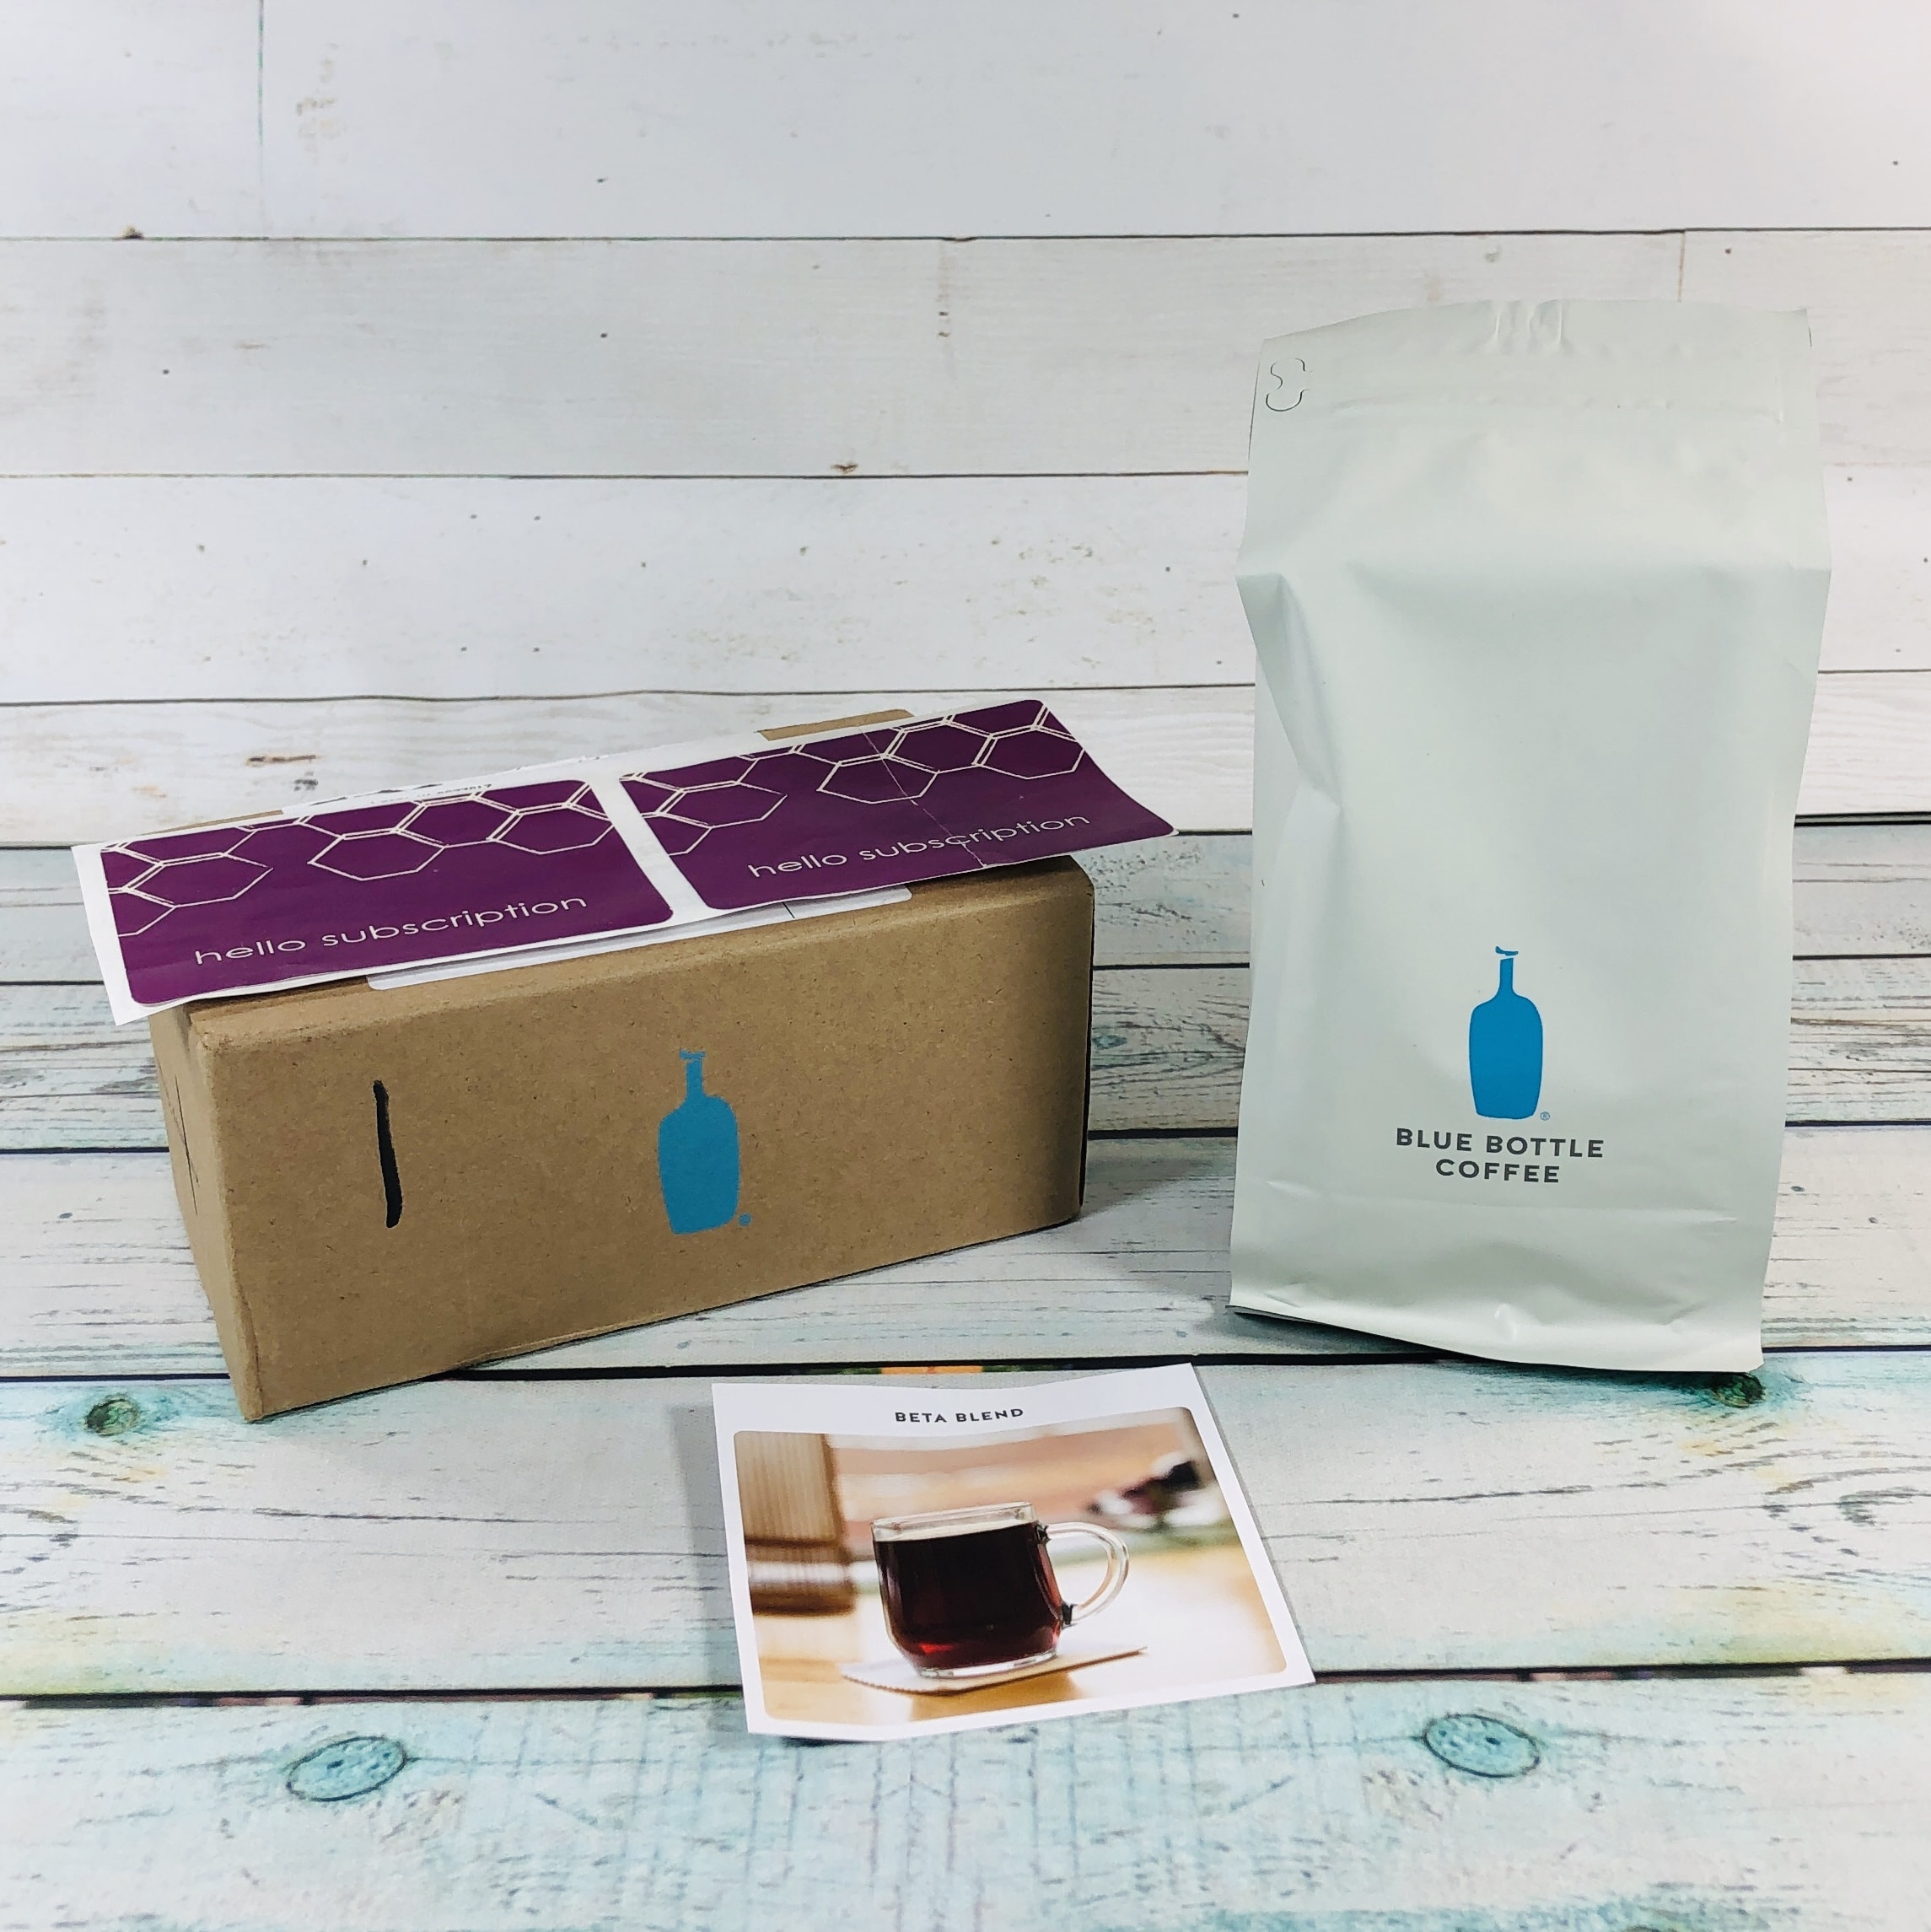 Blue Bottle Coffee July 2019 Review + Free Trial Coupon #2